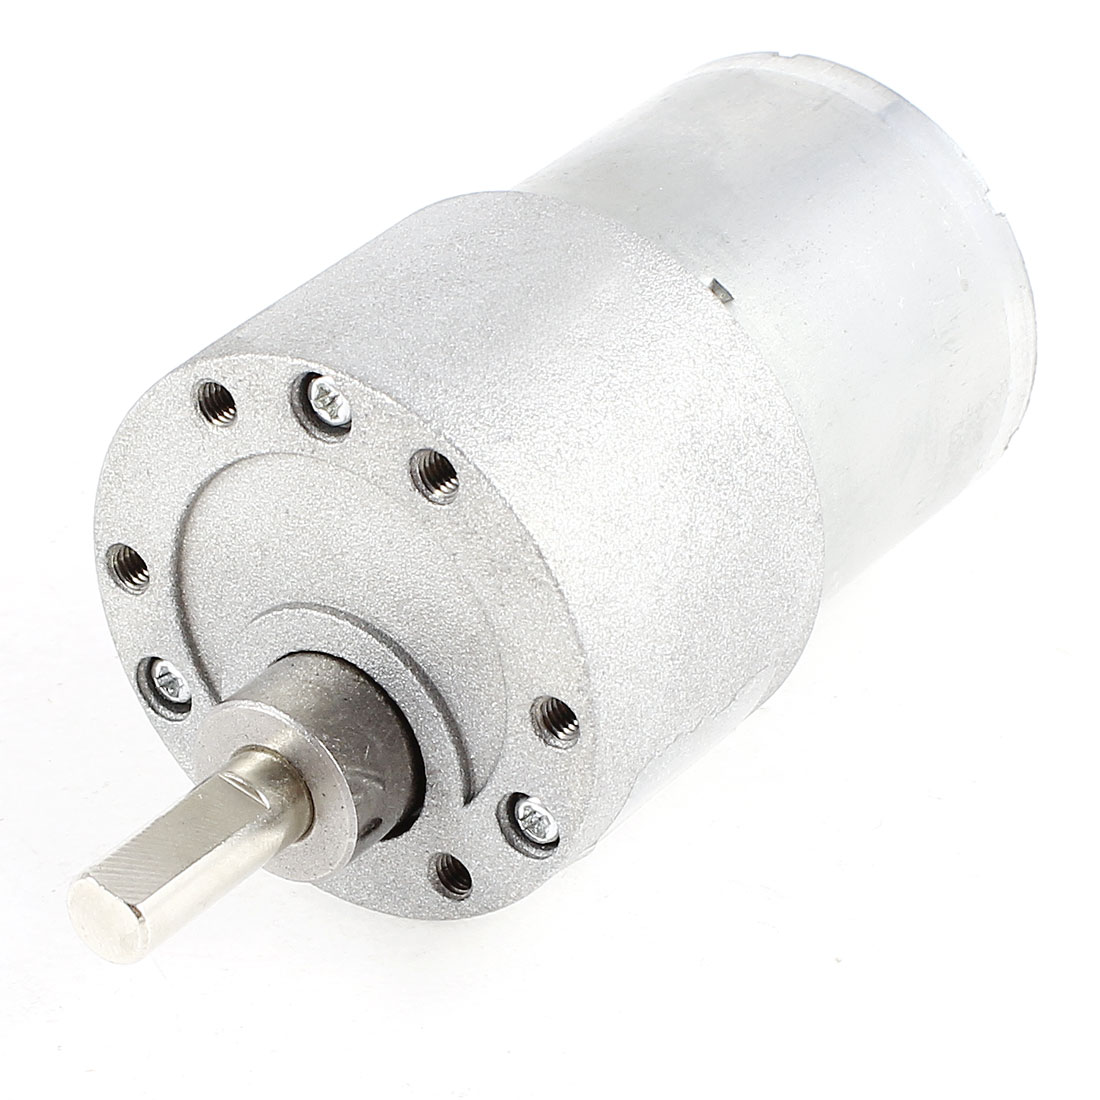 DC 12V 60RPM 6mm Diameter Shaft Cylinder Electric Geared Box Speed Reduce Motor